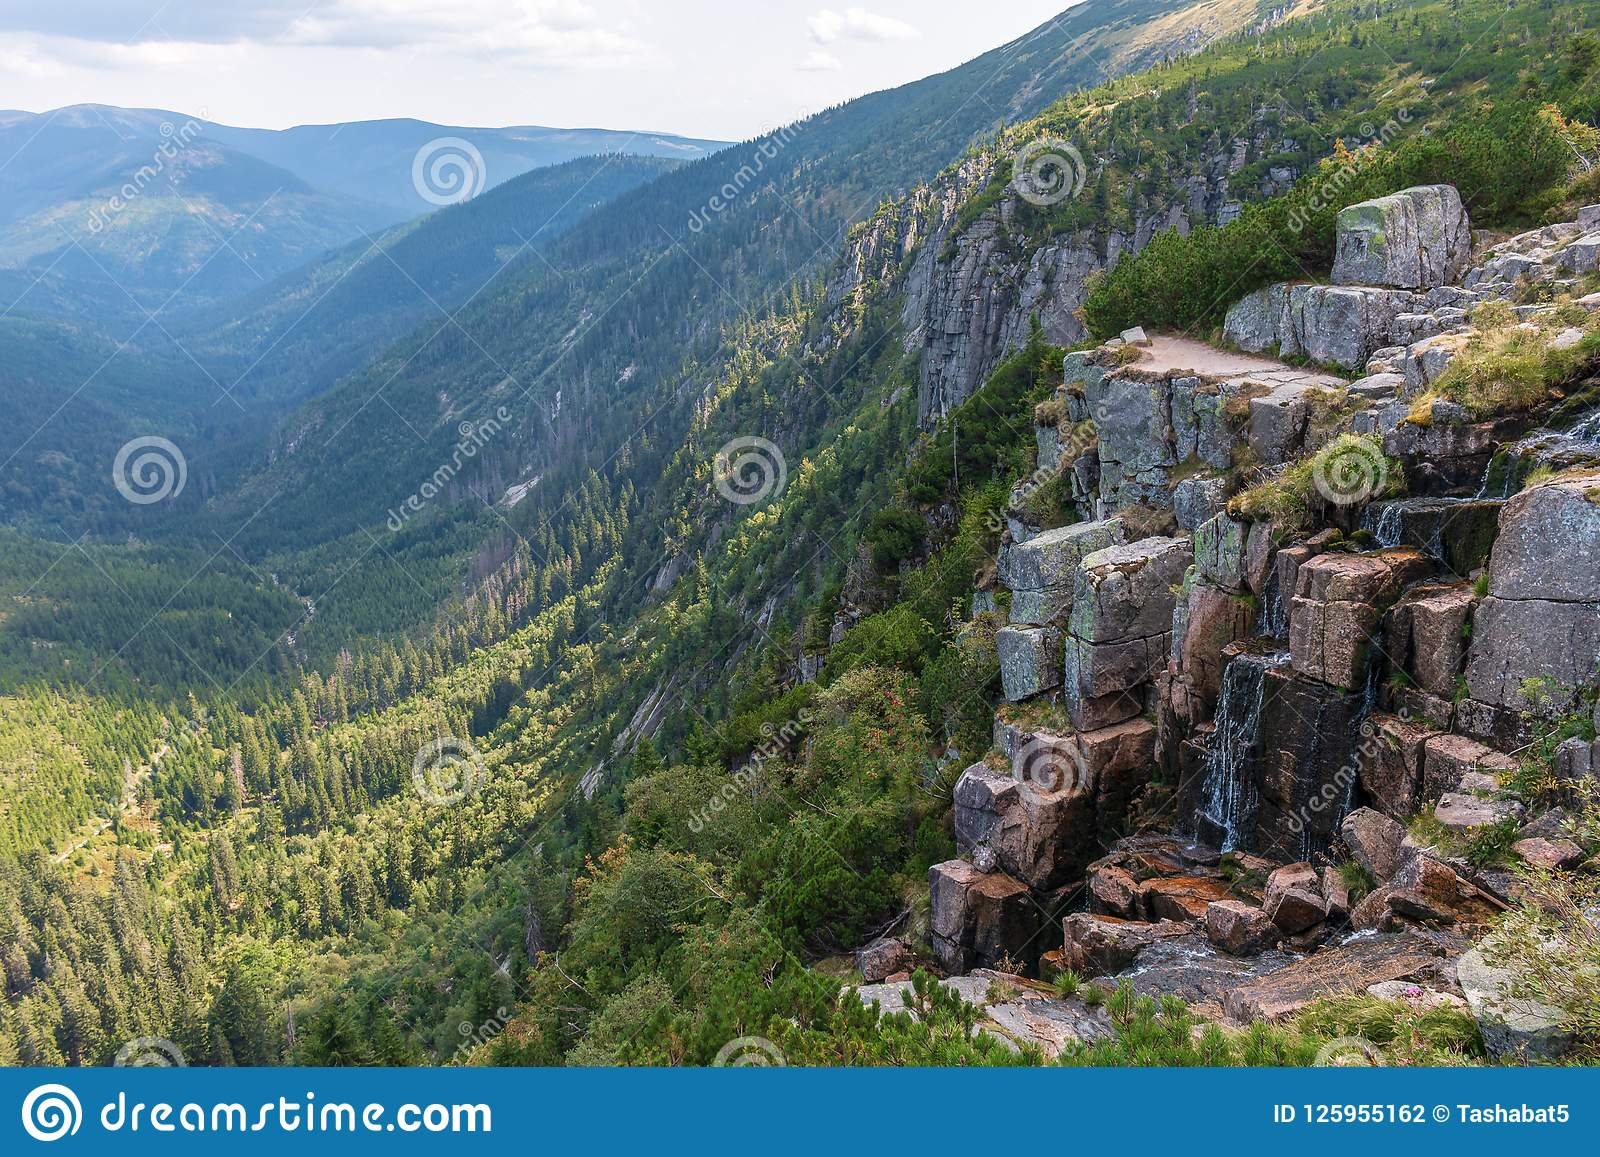 Beautiful view of Krkonose Mountains, Elbe valley and waterfall